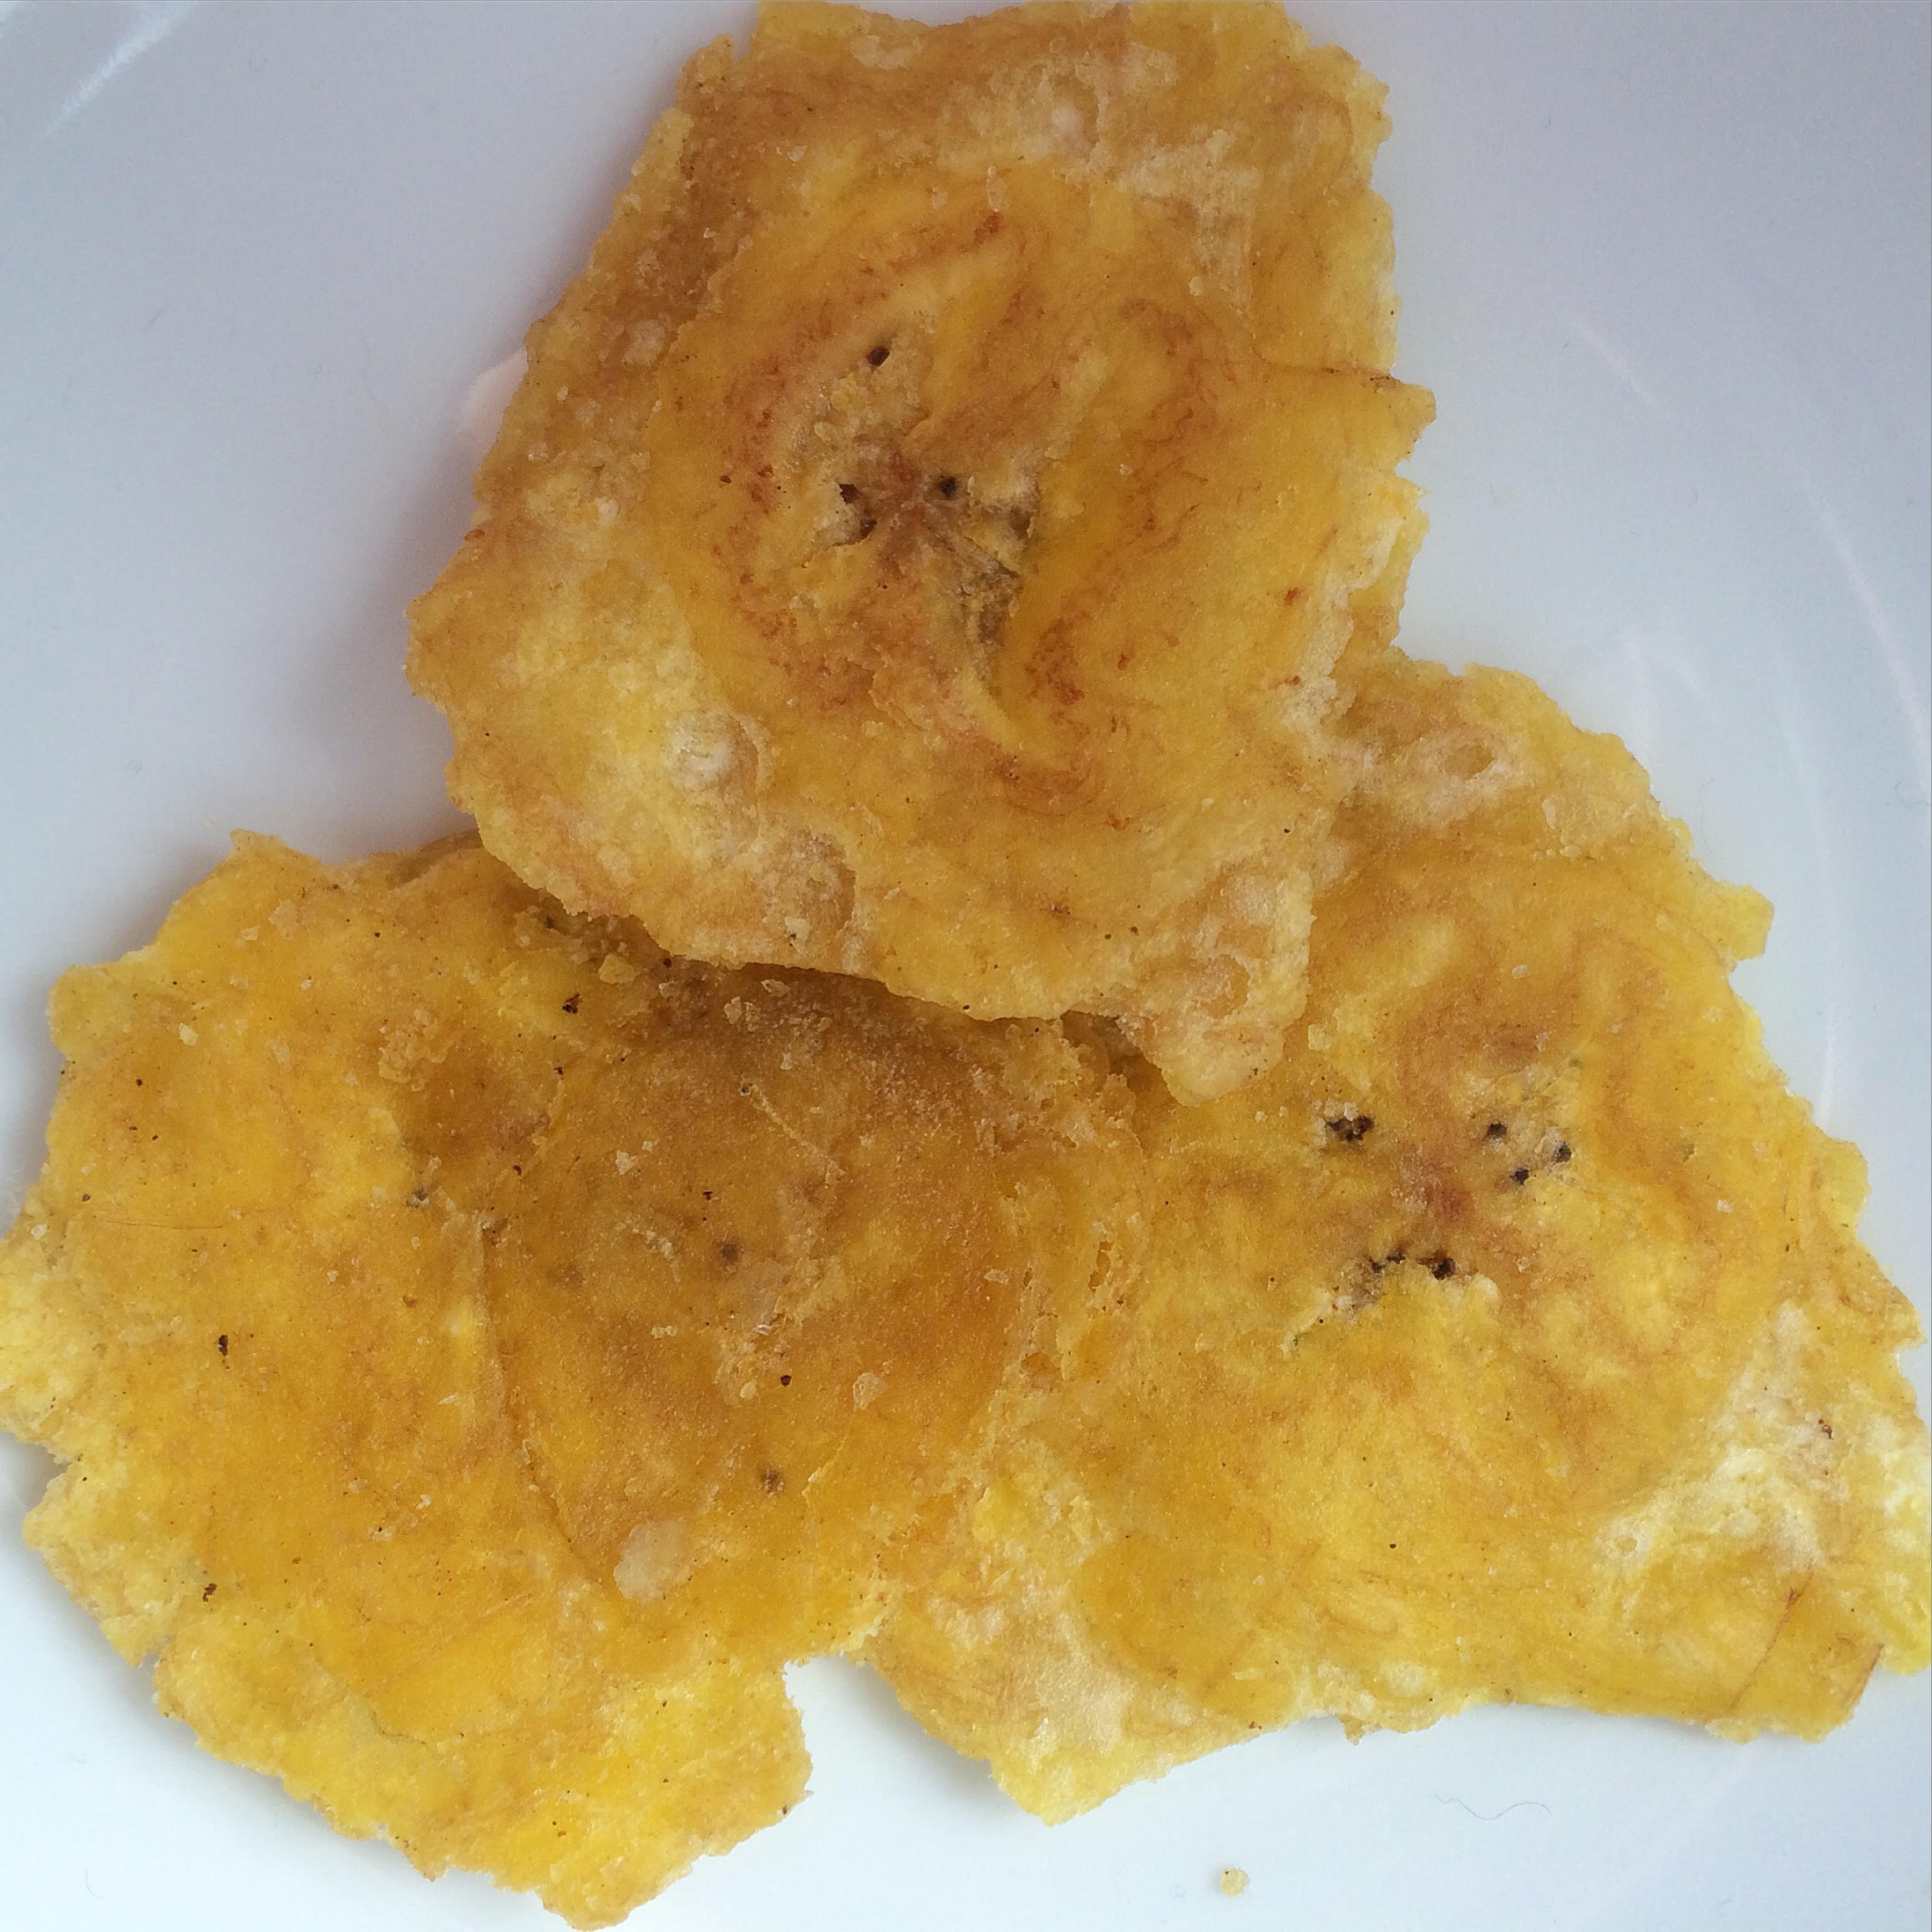 Ecuadorian food: Patacones and green plantain chips